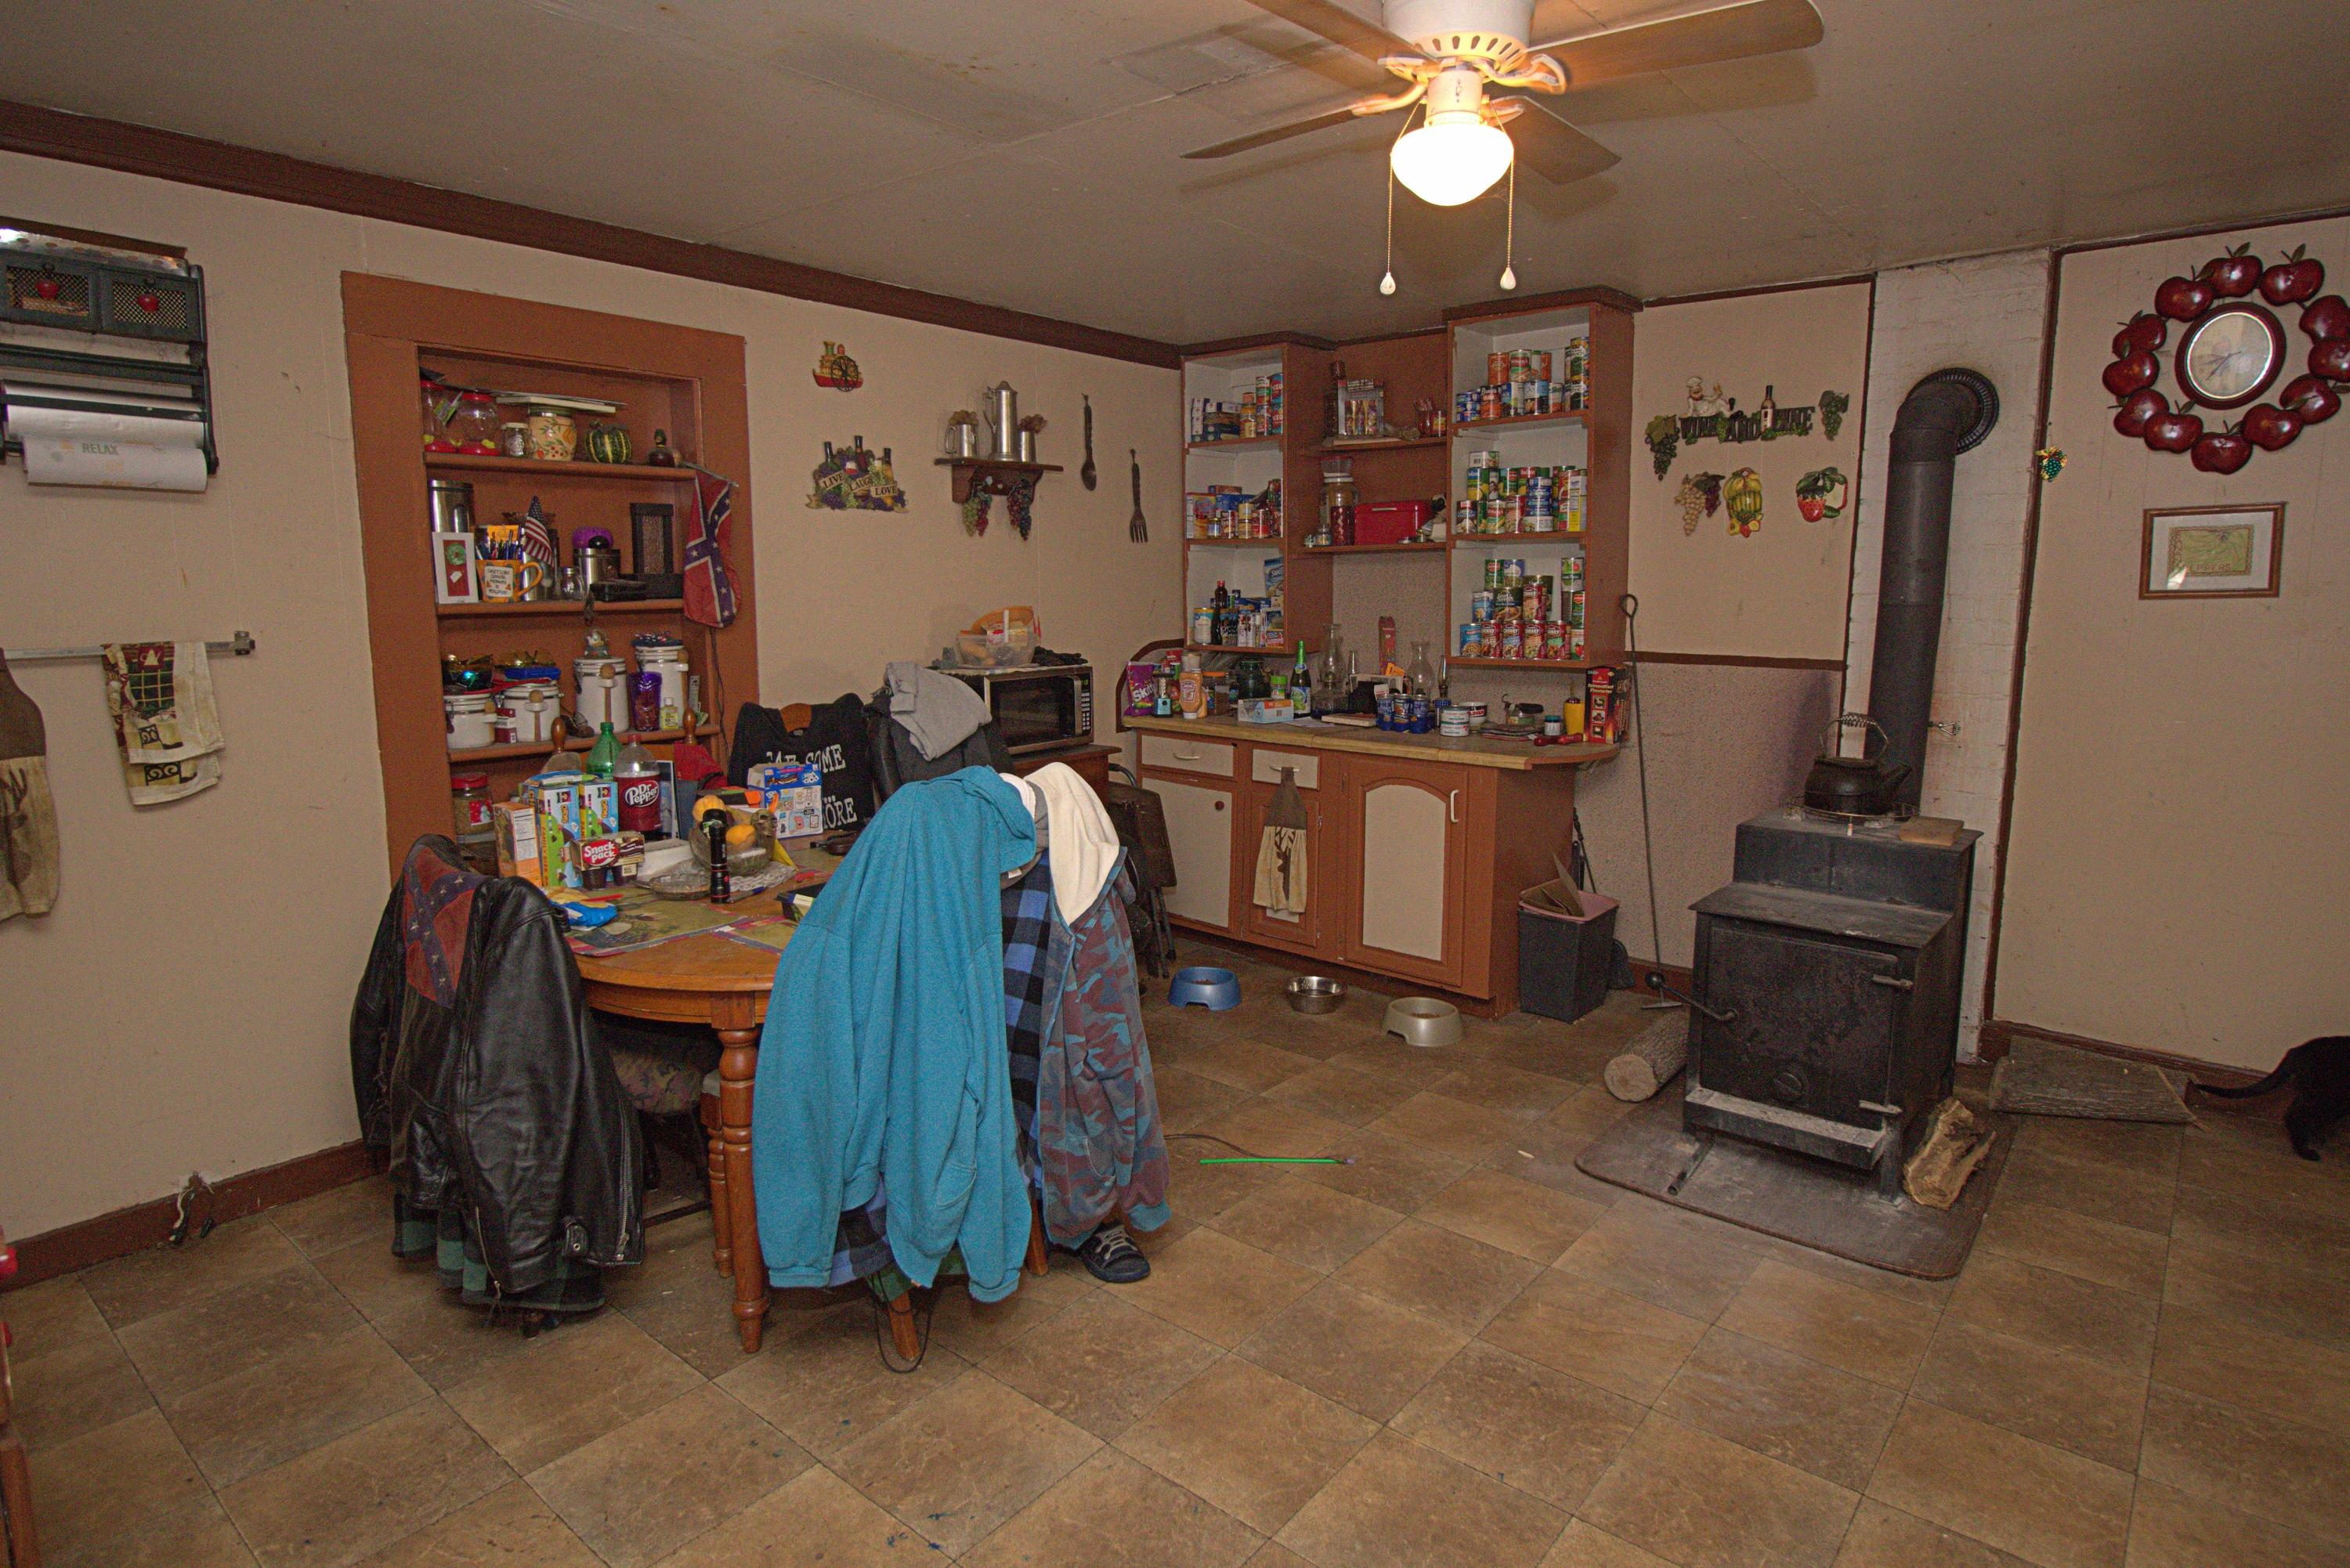 Additional photo for property listing at 3085 Powell Dr Salem, Virginia 24153 United States